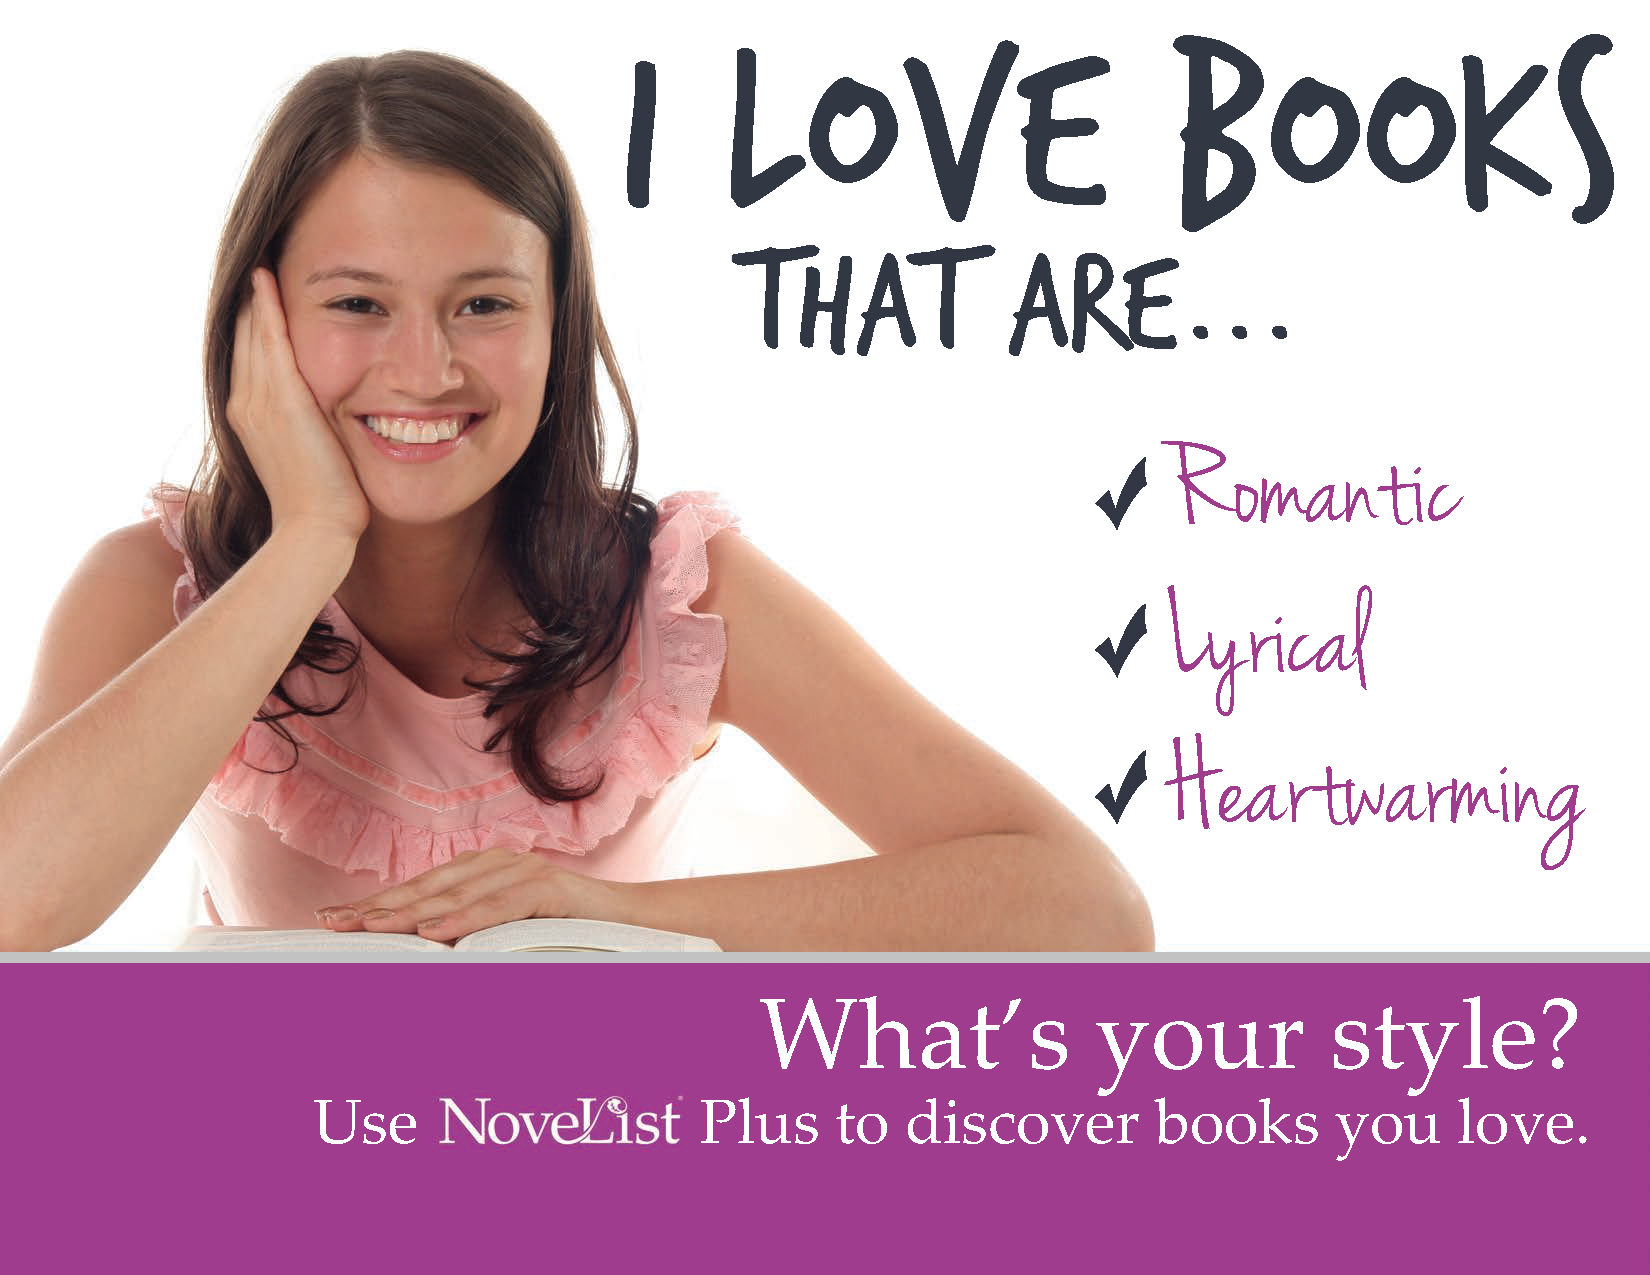 novelist_plus_flyer_ilovebooks_romantic